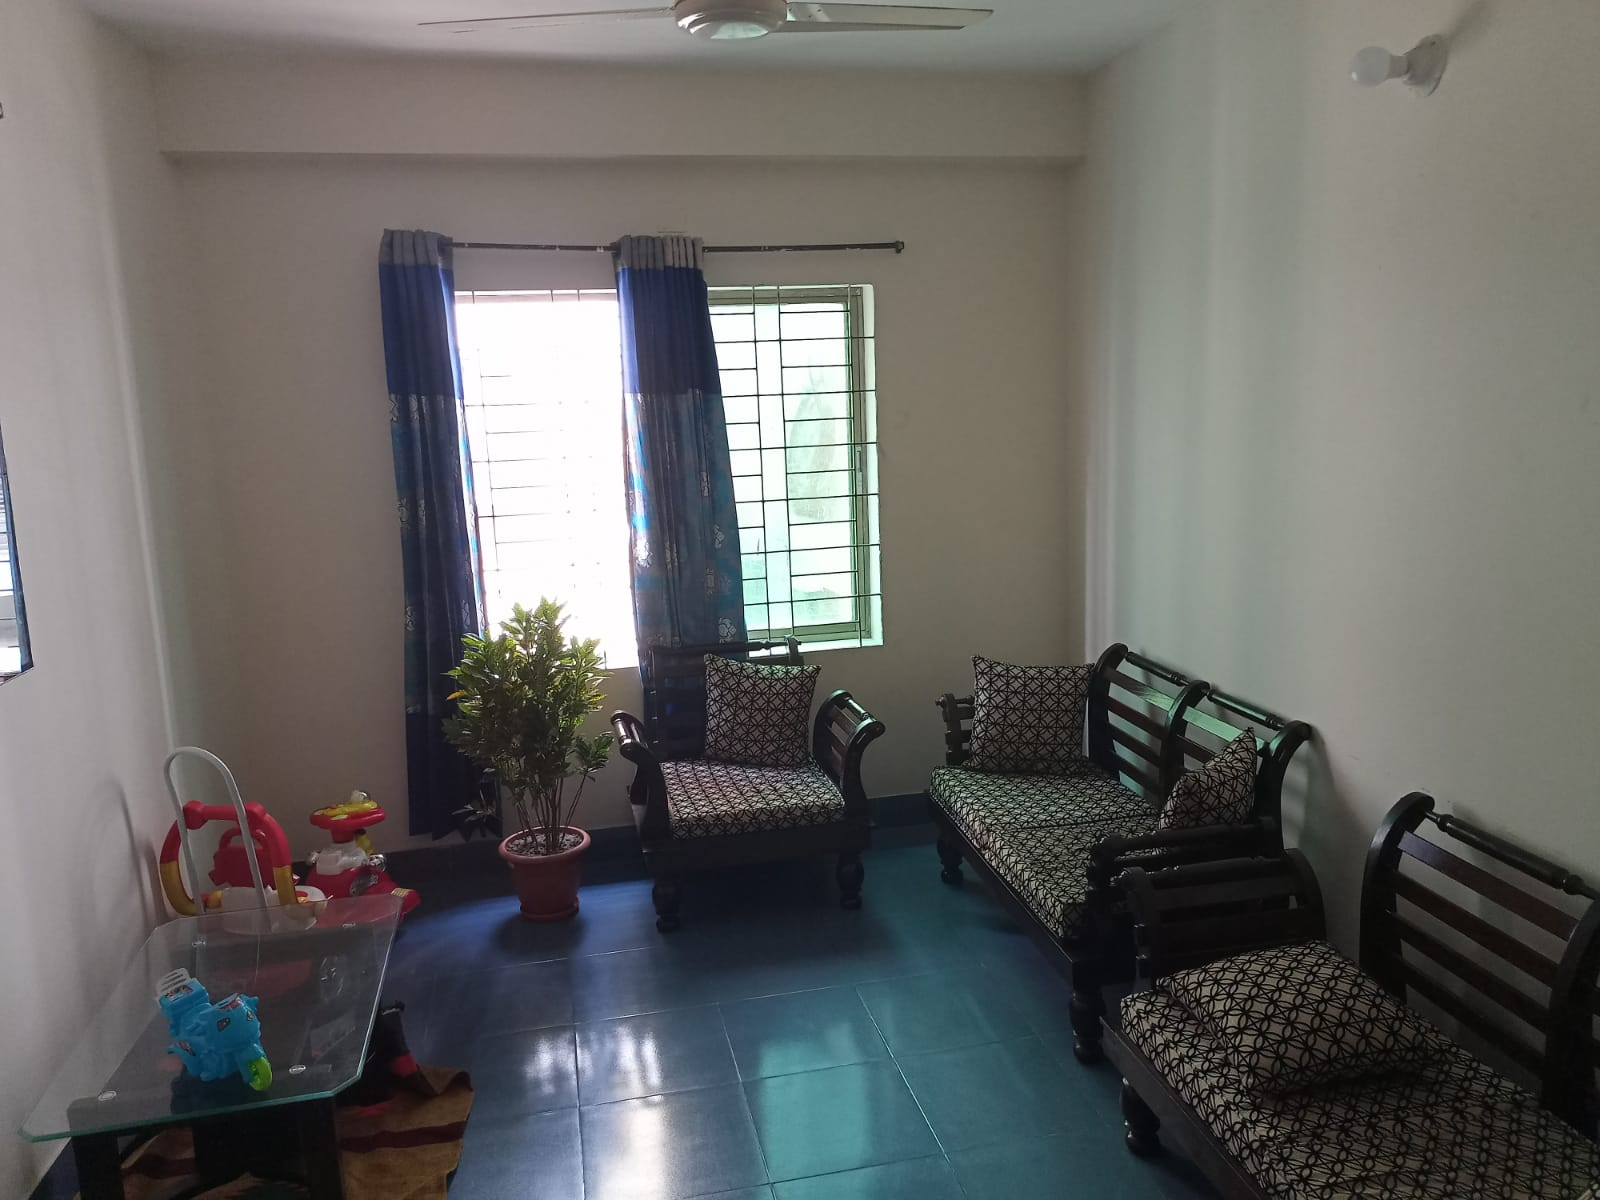 1100-sft-apartment-for-sale-in-kalabagan-4th-floor-104271